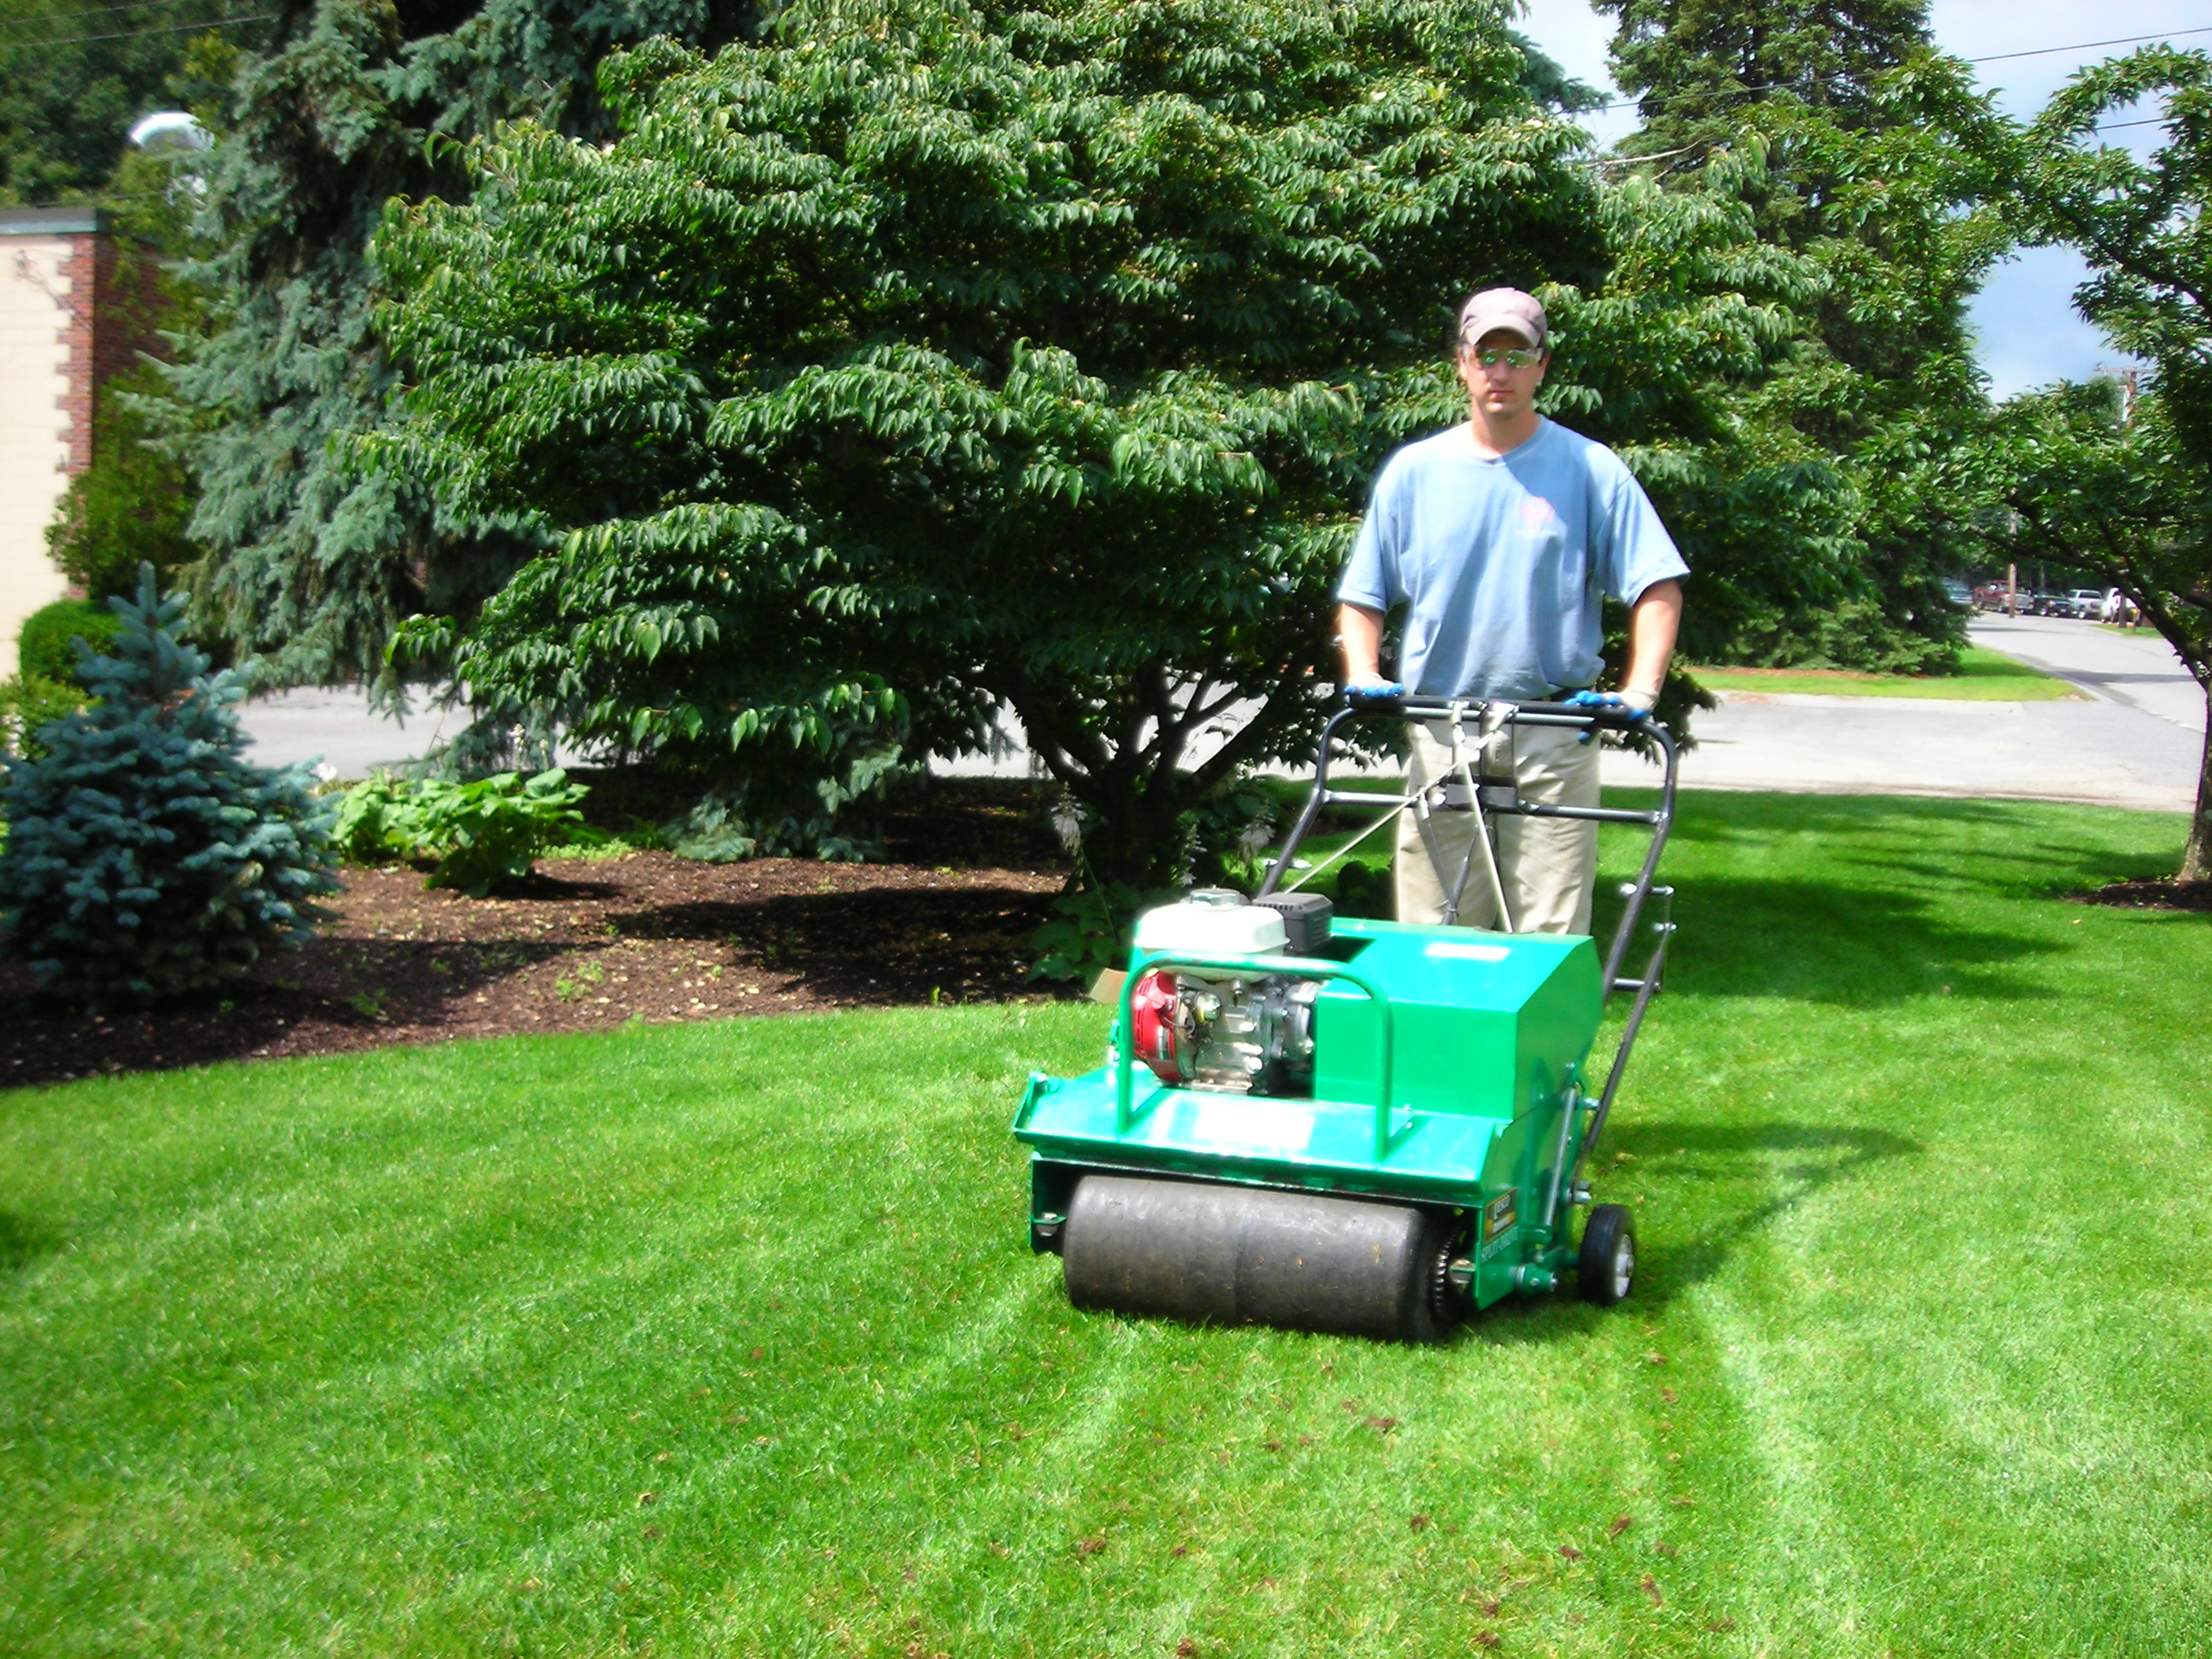 New Professional Lawn Care Services